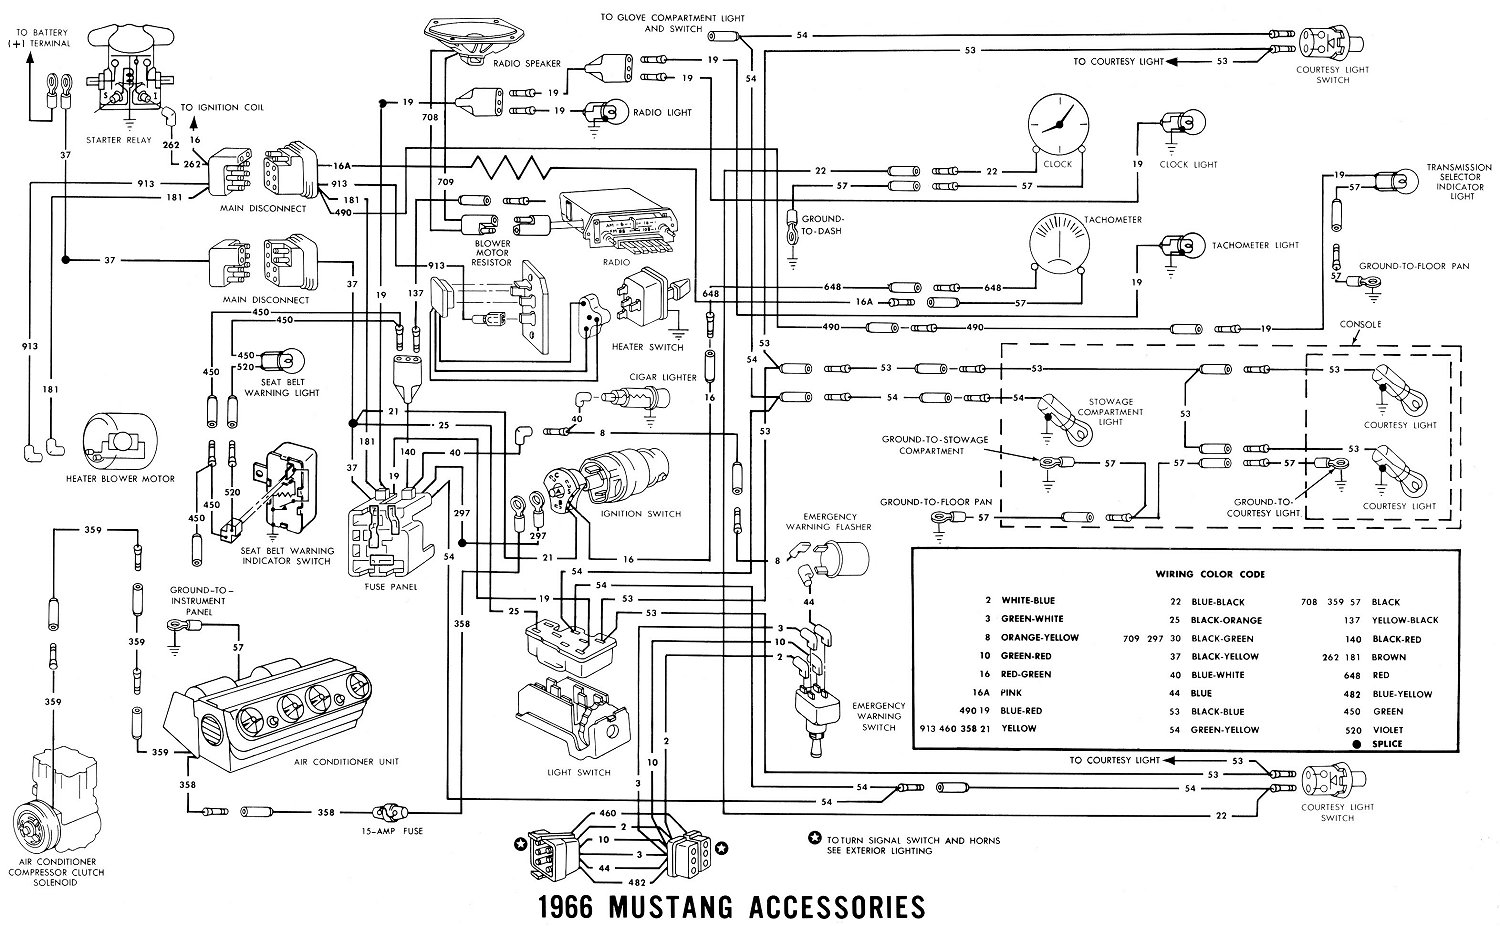 66 Mustang Wiring Harness Diagram - DIY Wiring Diagrams •